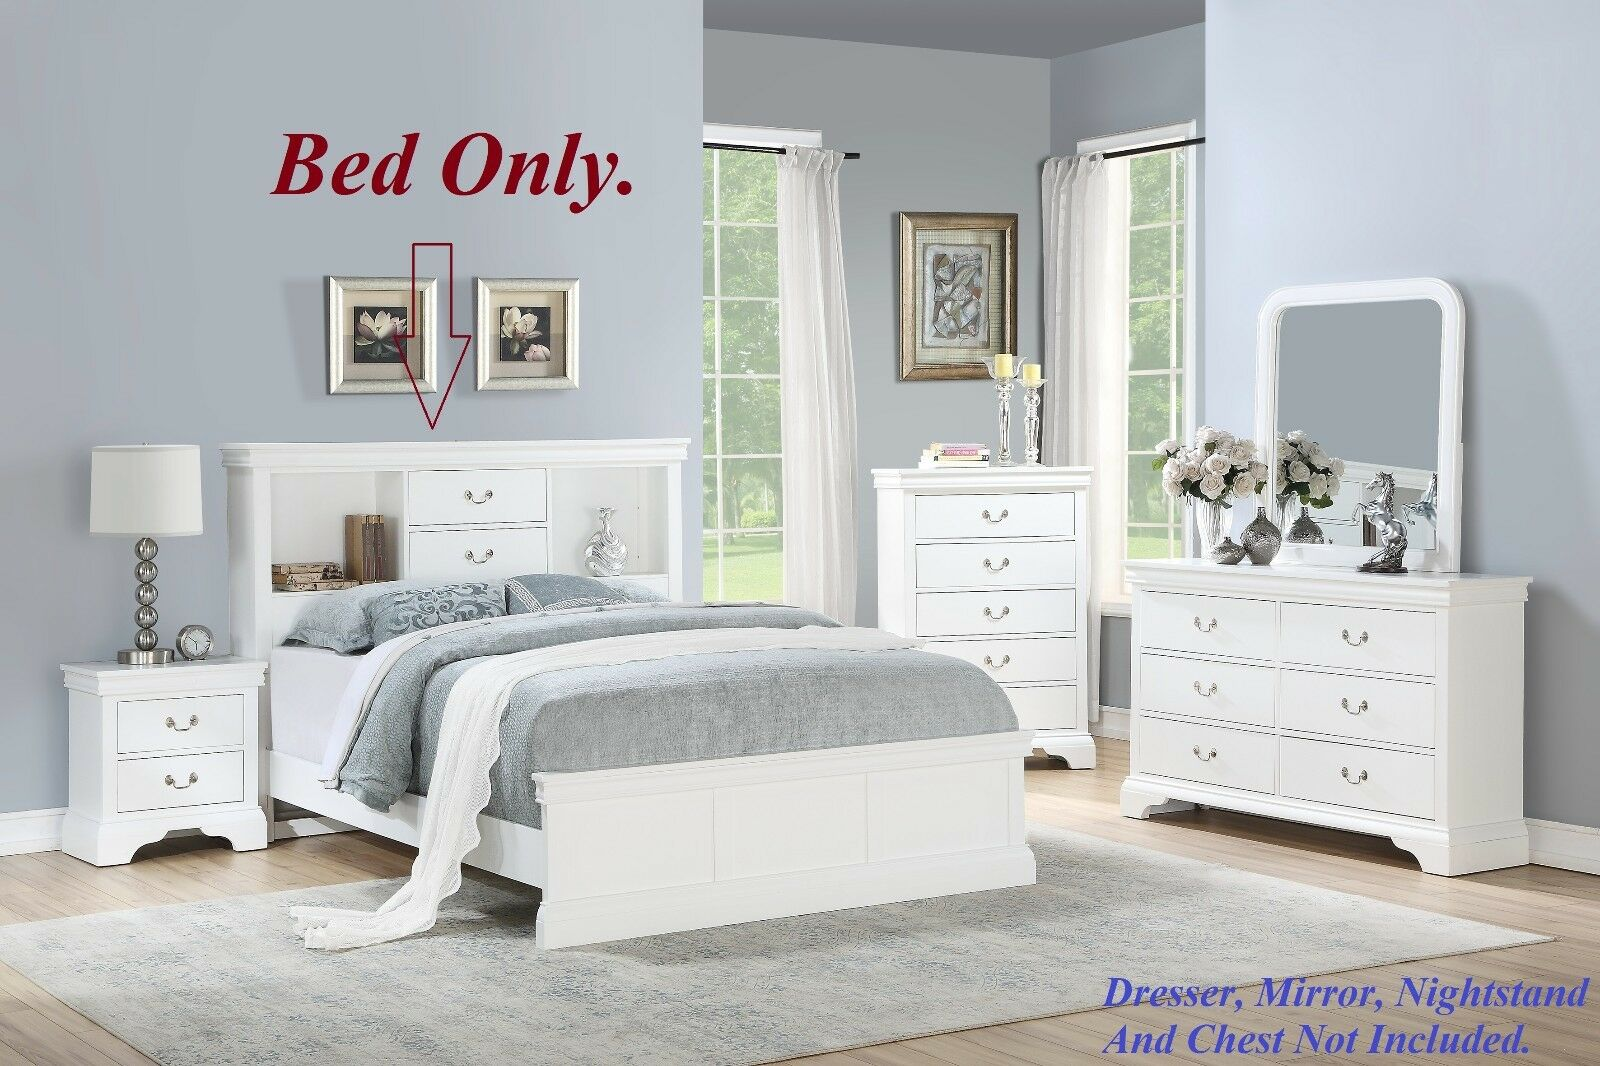 1pc Modern Bedframe Full Size Bed Storage Drawers HB White Pattern FB  Bedroom